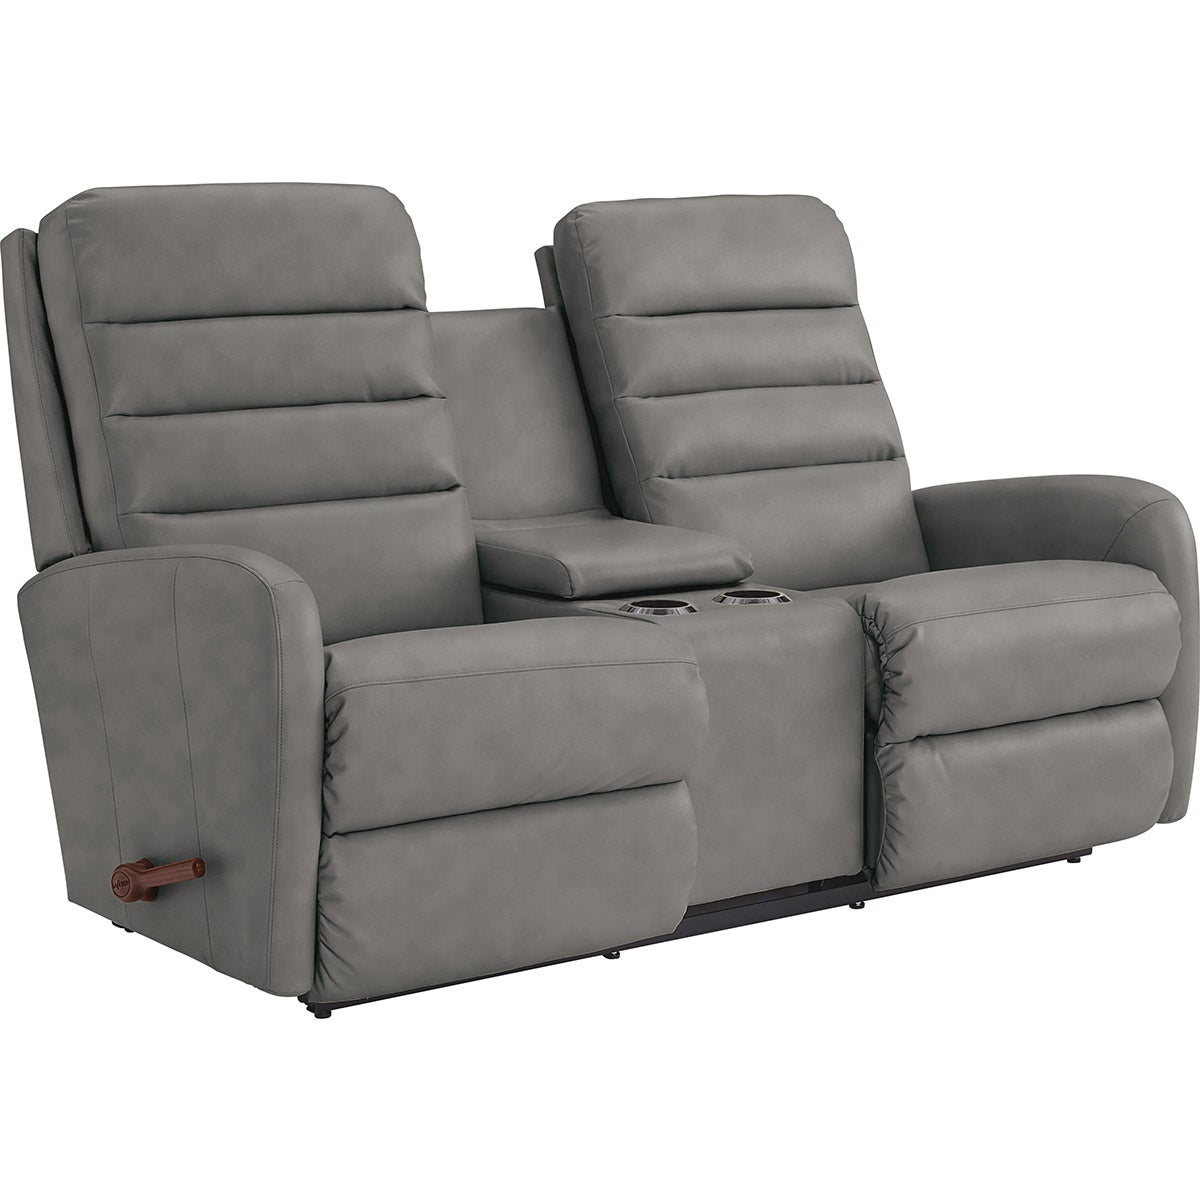 Lazy Boy Recliner Loveseat 100 Lazy Boy Chair Bed Recliners U0026 Chairs Metal Plastic Lazy